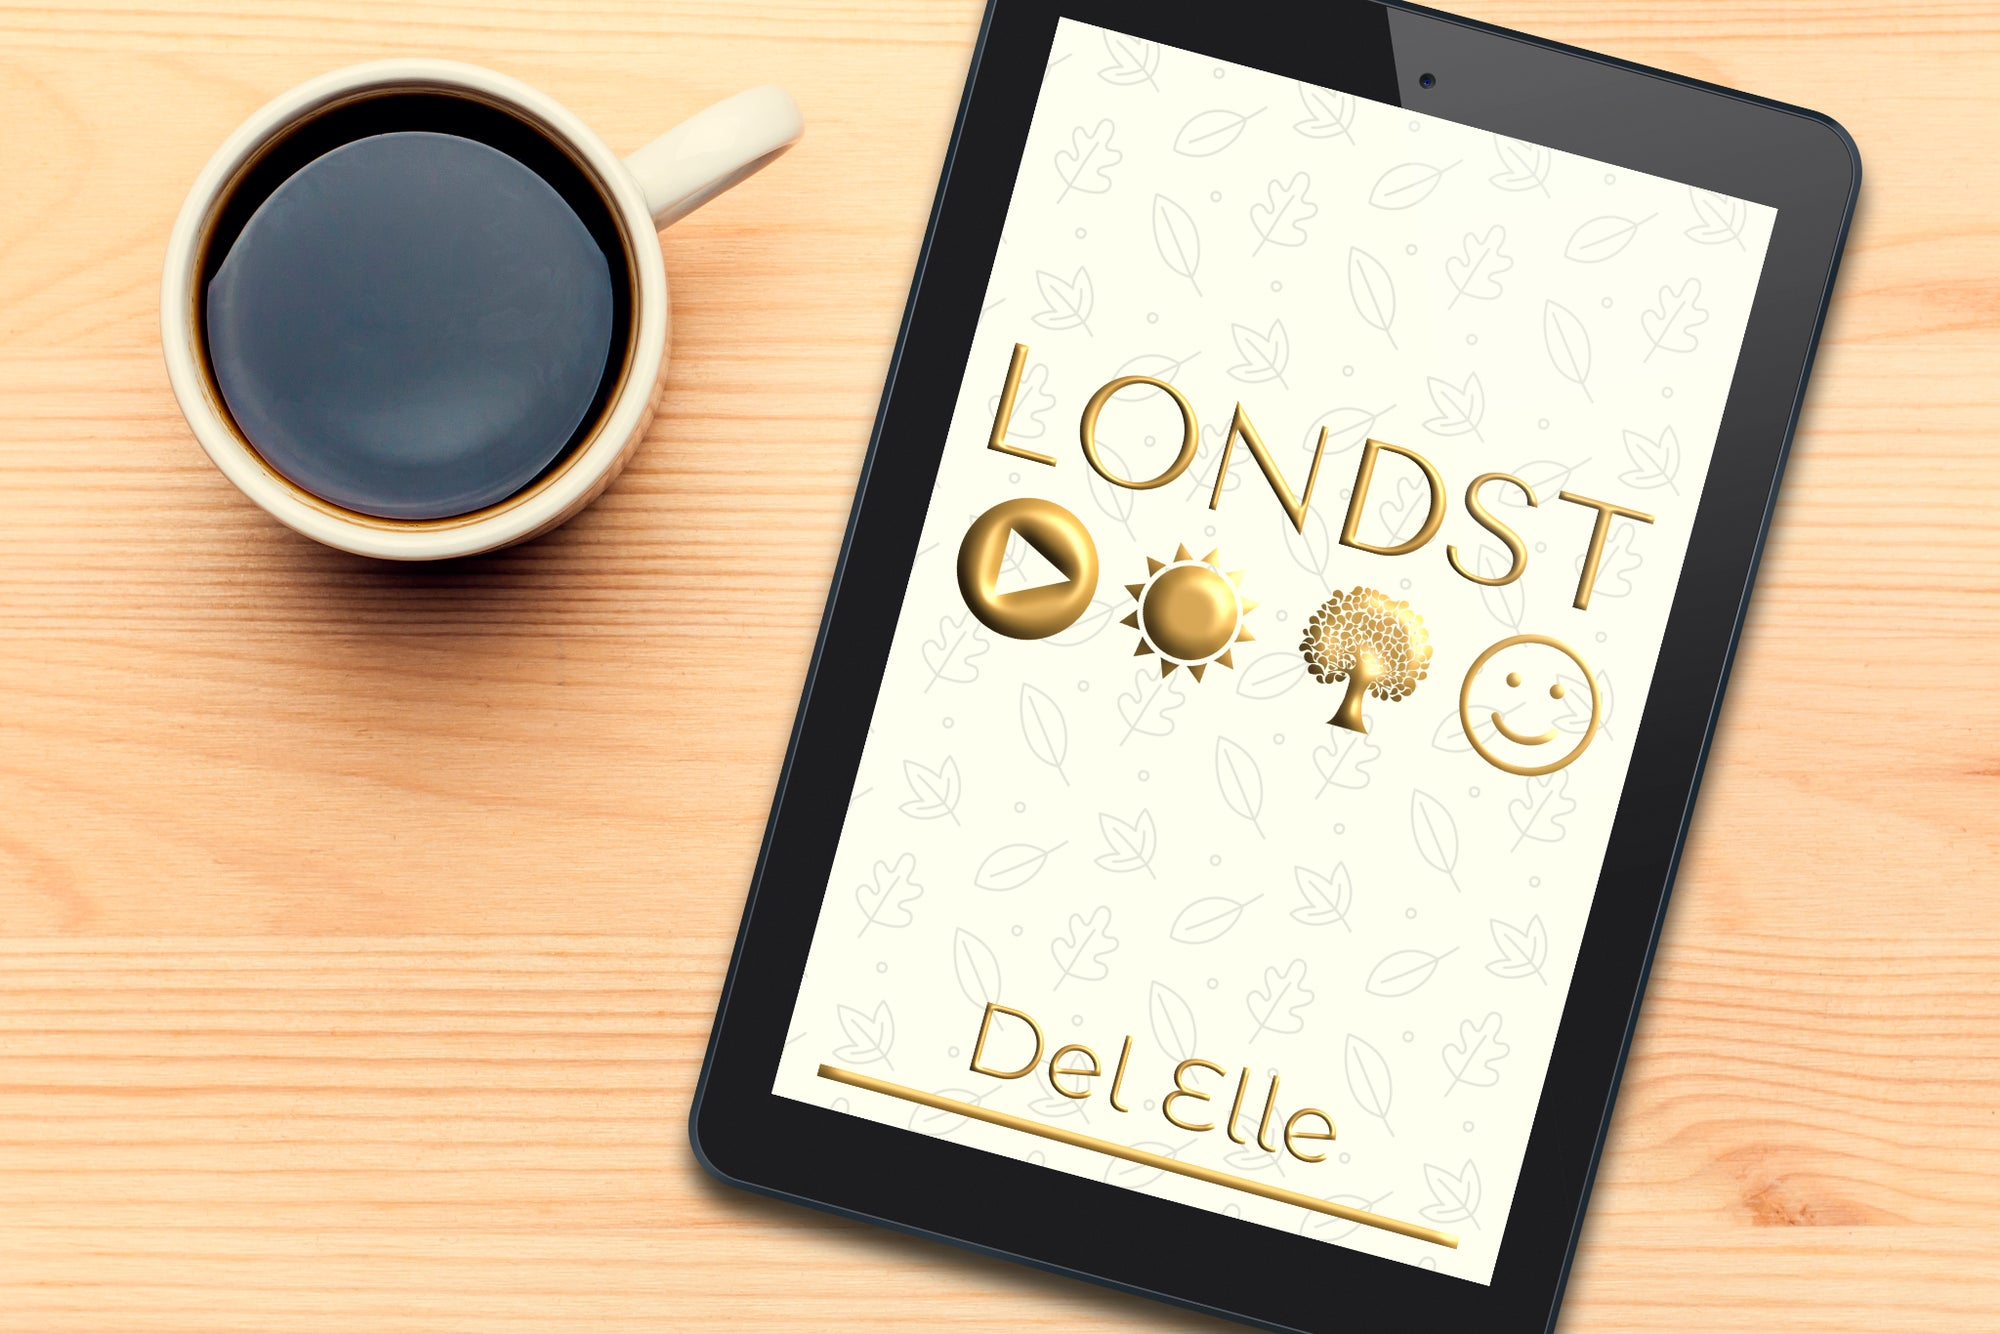 The short story Londst on an ebook reader